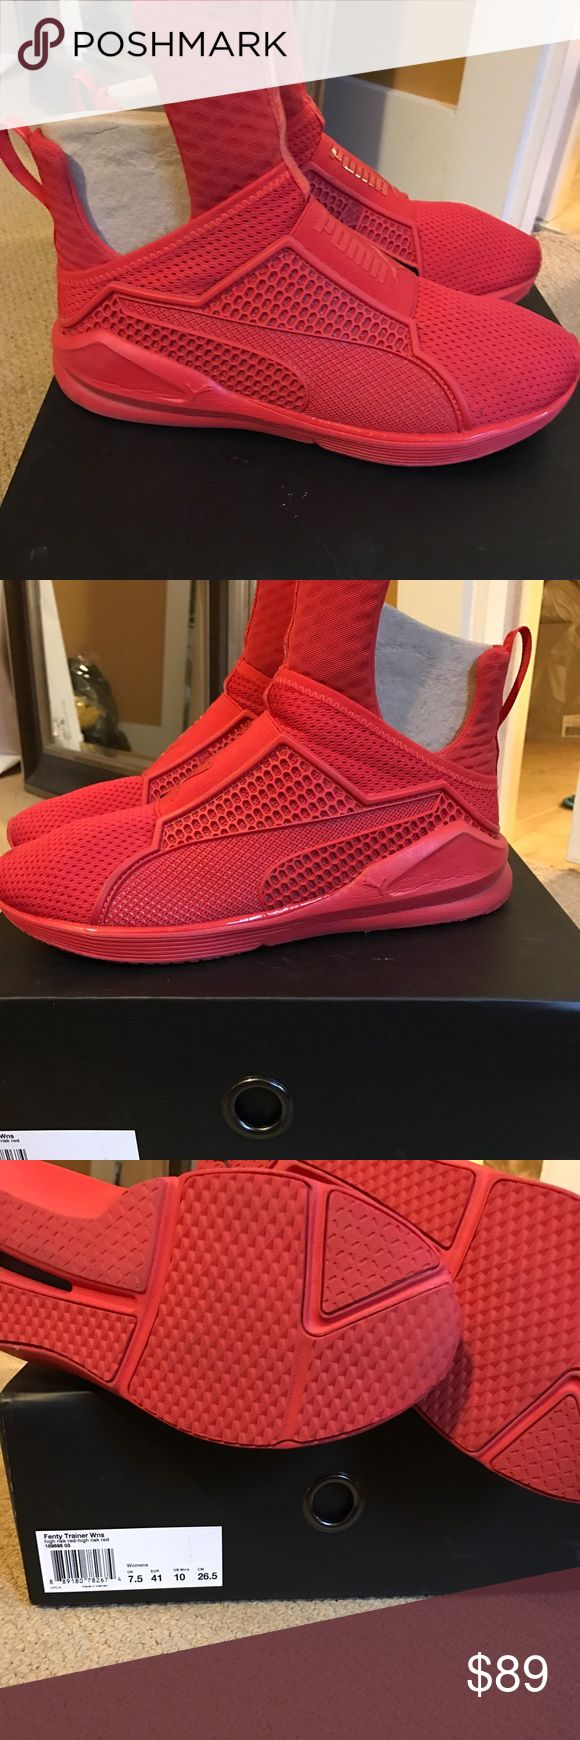 Women's Fenty trainer in Red! Sz 10!!! Women's Fenty trainer in Red! Sz 10!!! Worn a few times...... kept in box. Original box!!! Excellent condition! No scuffs or scrapes! Take a look at the bottom of shoe!!! 👍🏽👍🏽👍🏽 smoke free. Pet free home. No odors!!! These were sold out every where last summer. I purchased from a private seller!!! Puma Shoes Athletic Shoes